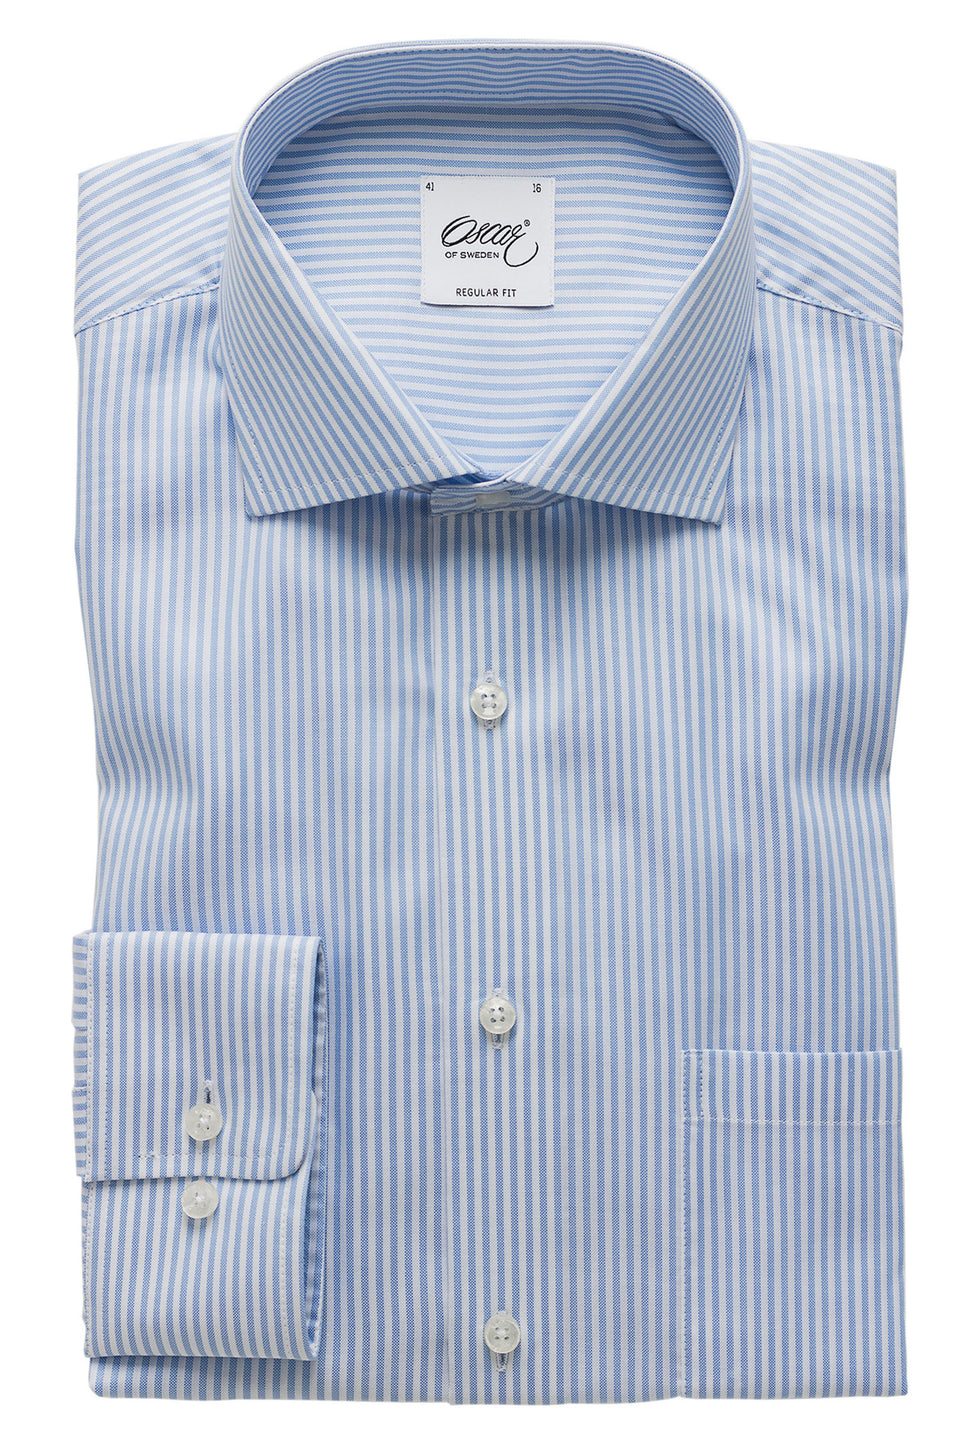 Blue striped regular fit shirt